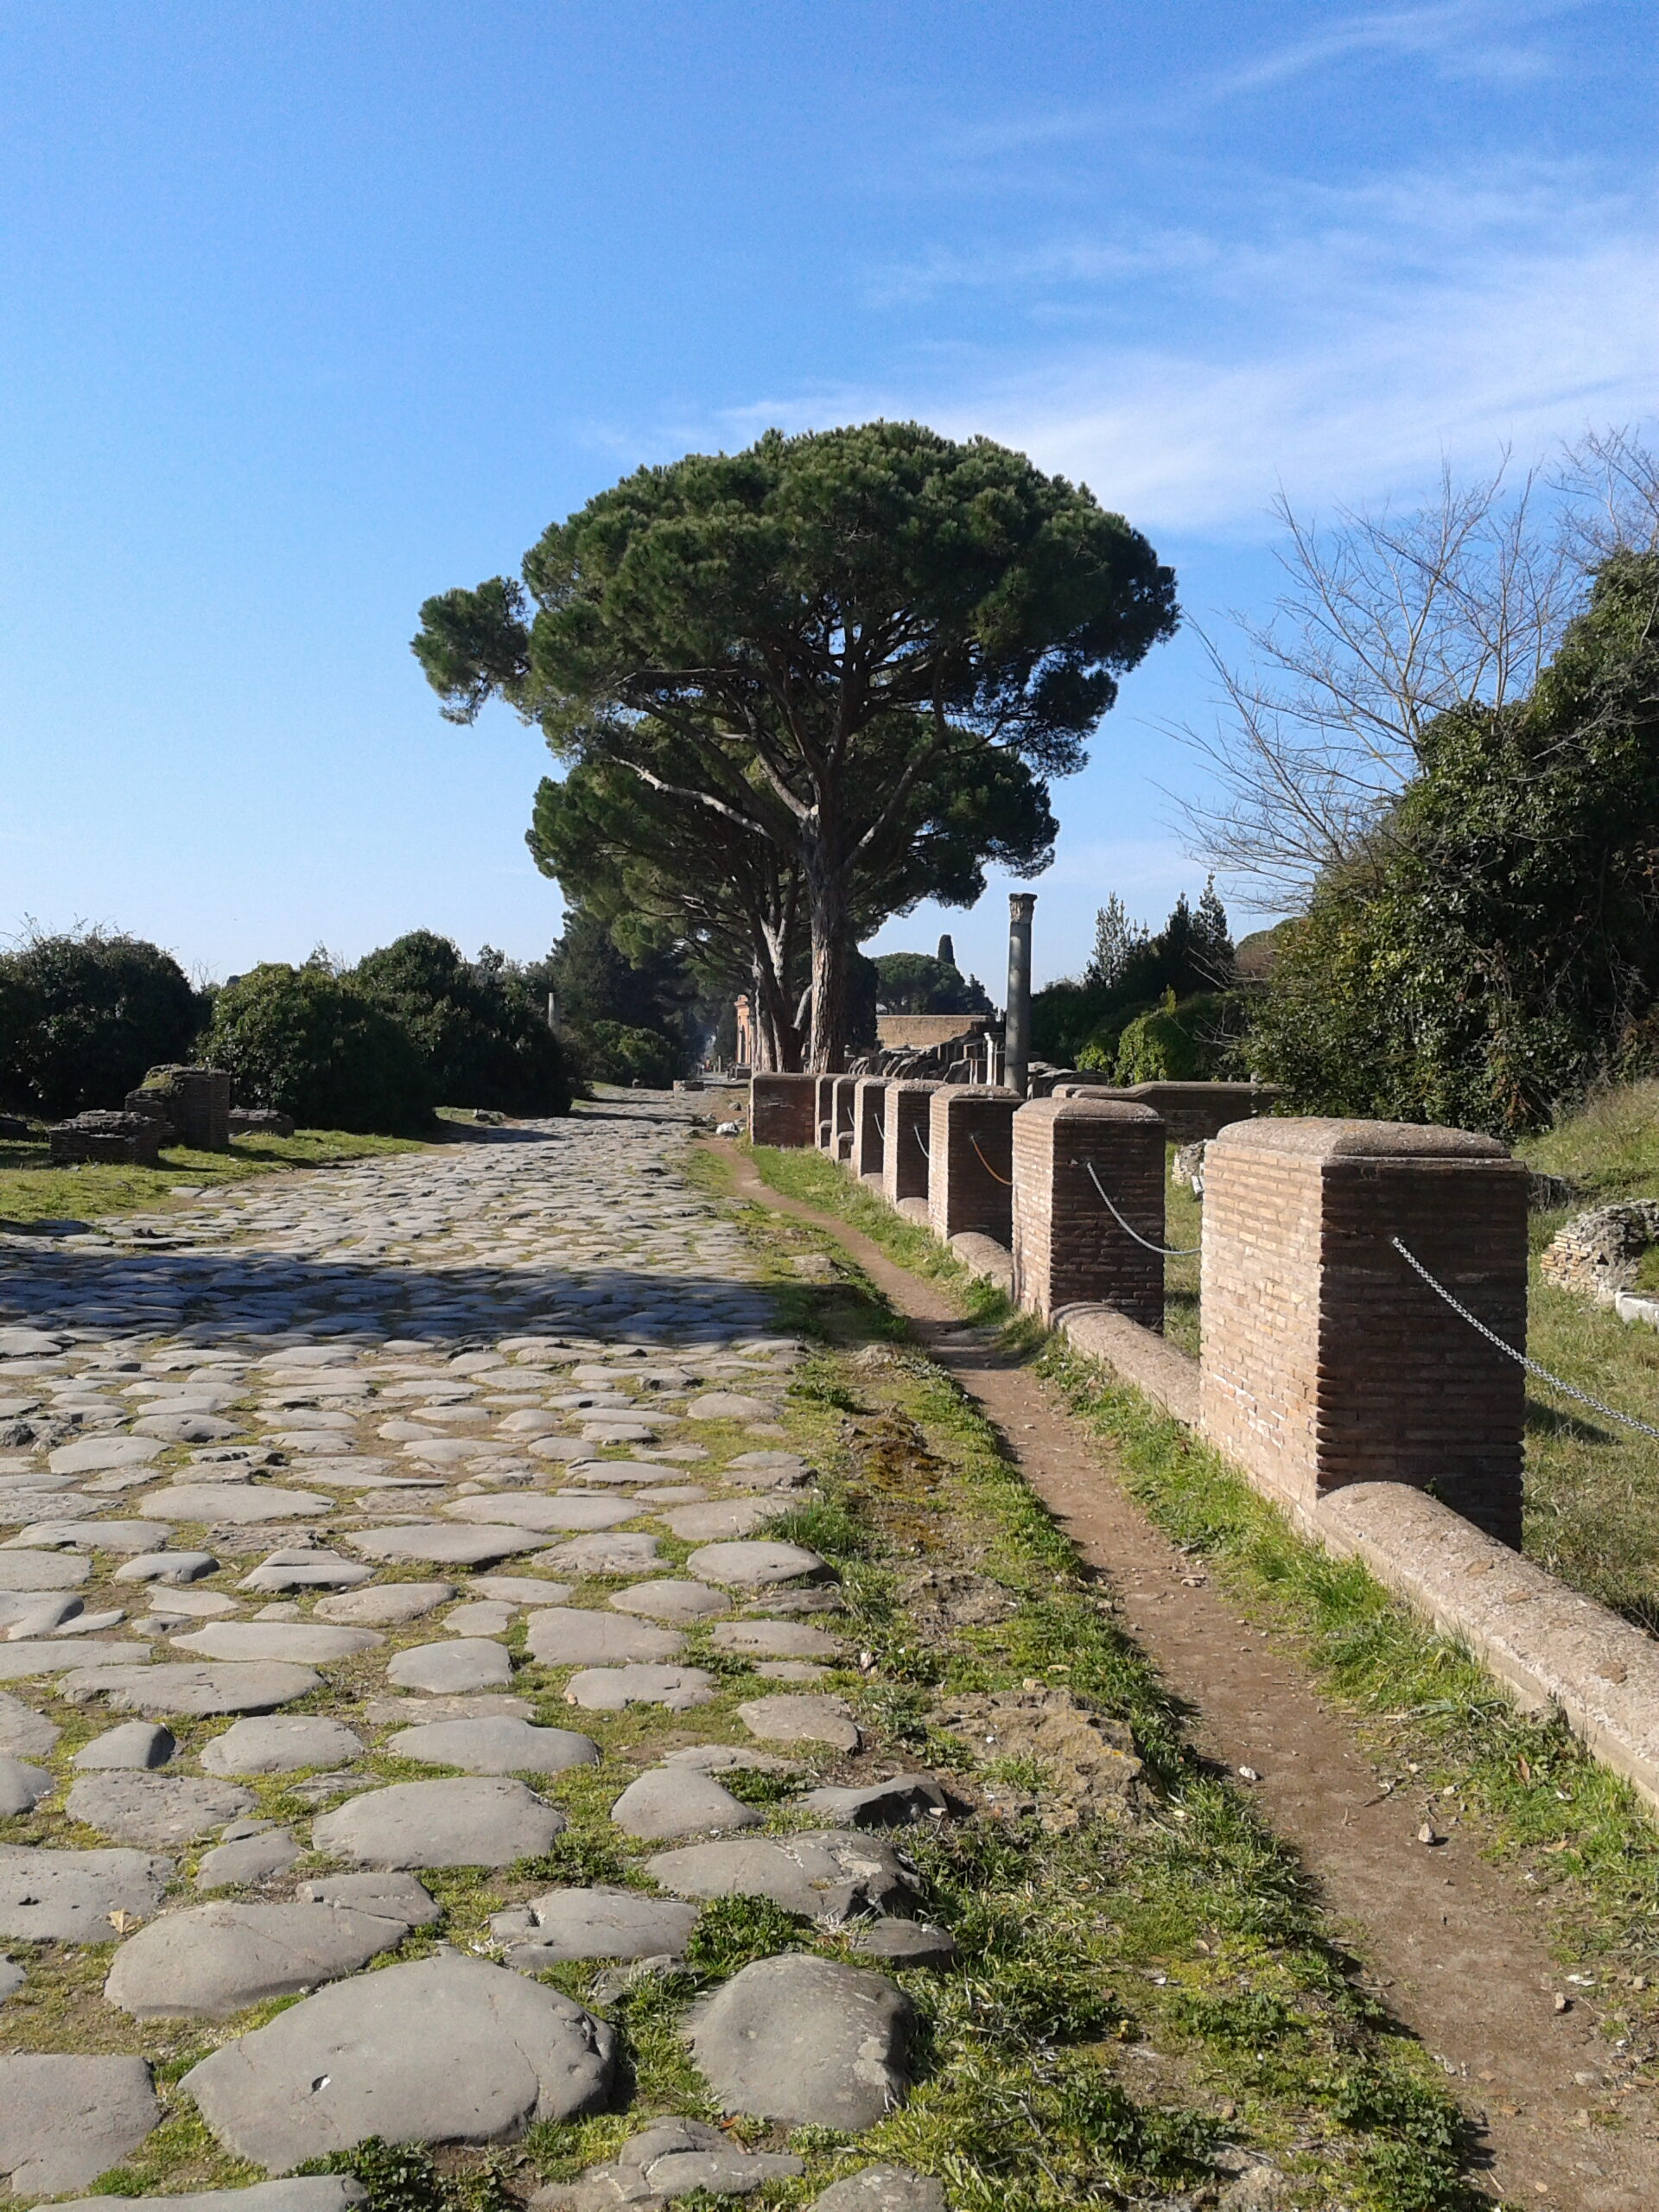 Ostia, Italy (Ostia Antica) – Chapter 1: An Introduction and Overview